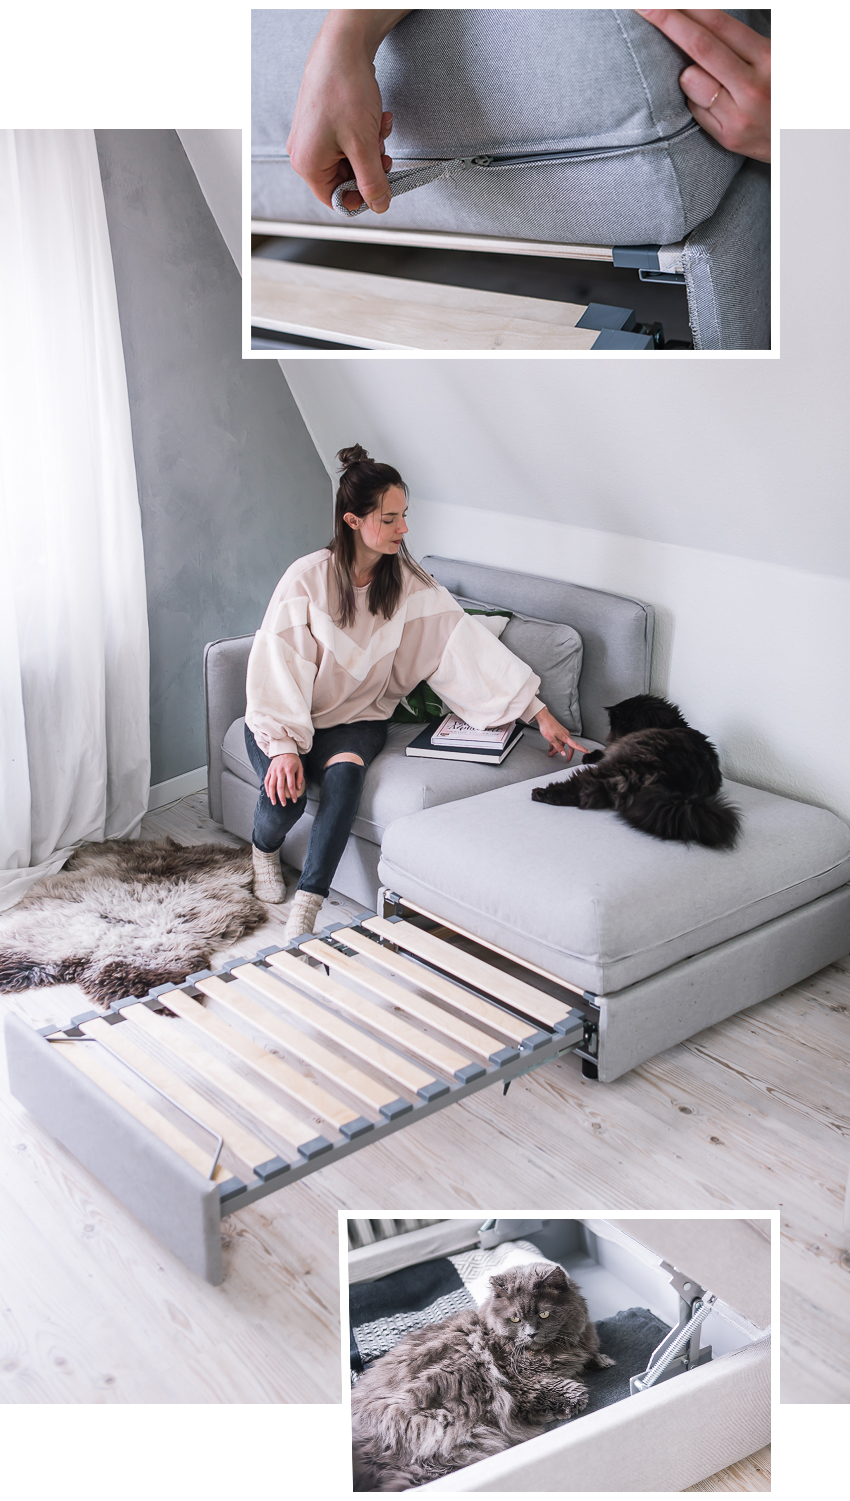 ikea sofa vallentuna ikea sofa vallentuna how to use a sofa to change the dynamic of a room. Black Bedroom Furniture Sets. Home Design Ideas